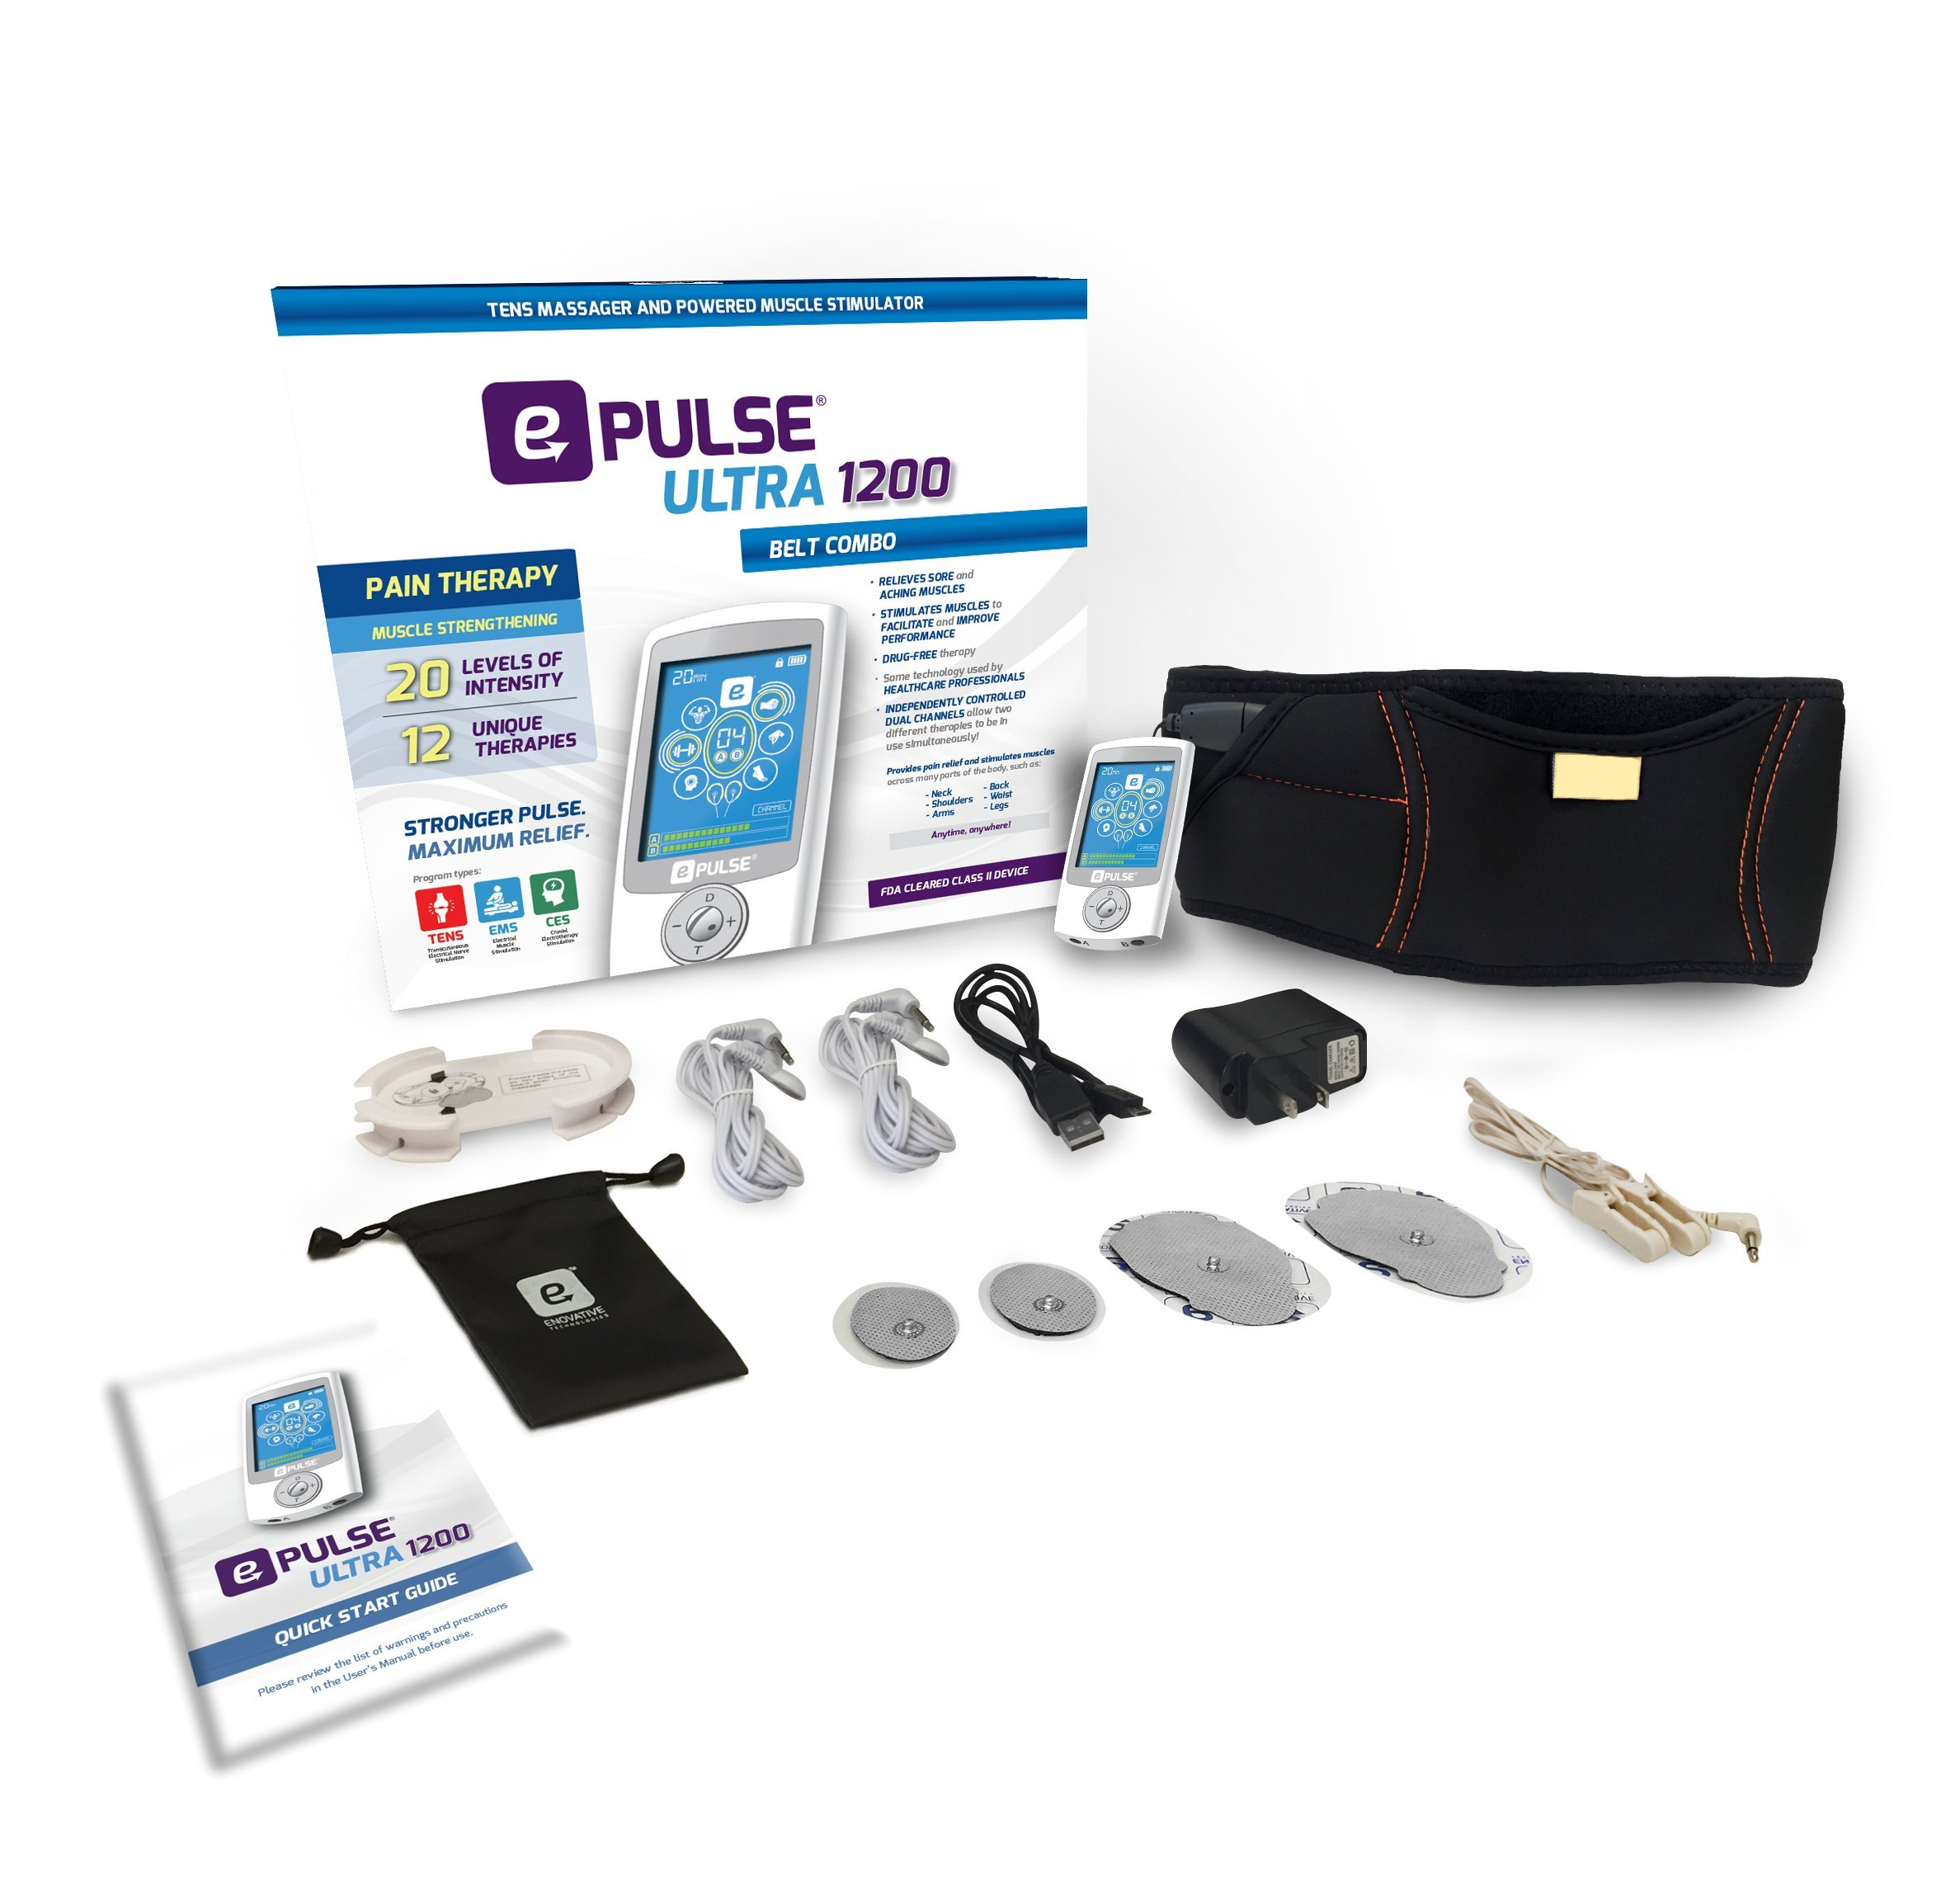 ePulse Ultra 1200 Advanced TENS & Electrostimulating Back Belt for Drug-Free Pain Relief - 12 TENS & EMS Therapies - FDA-Cleared OTC TENS Device